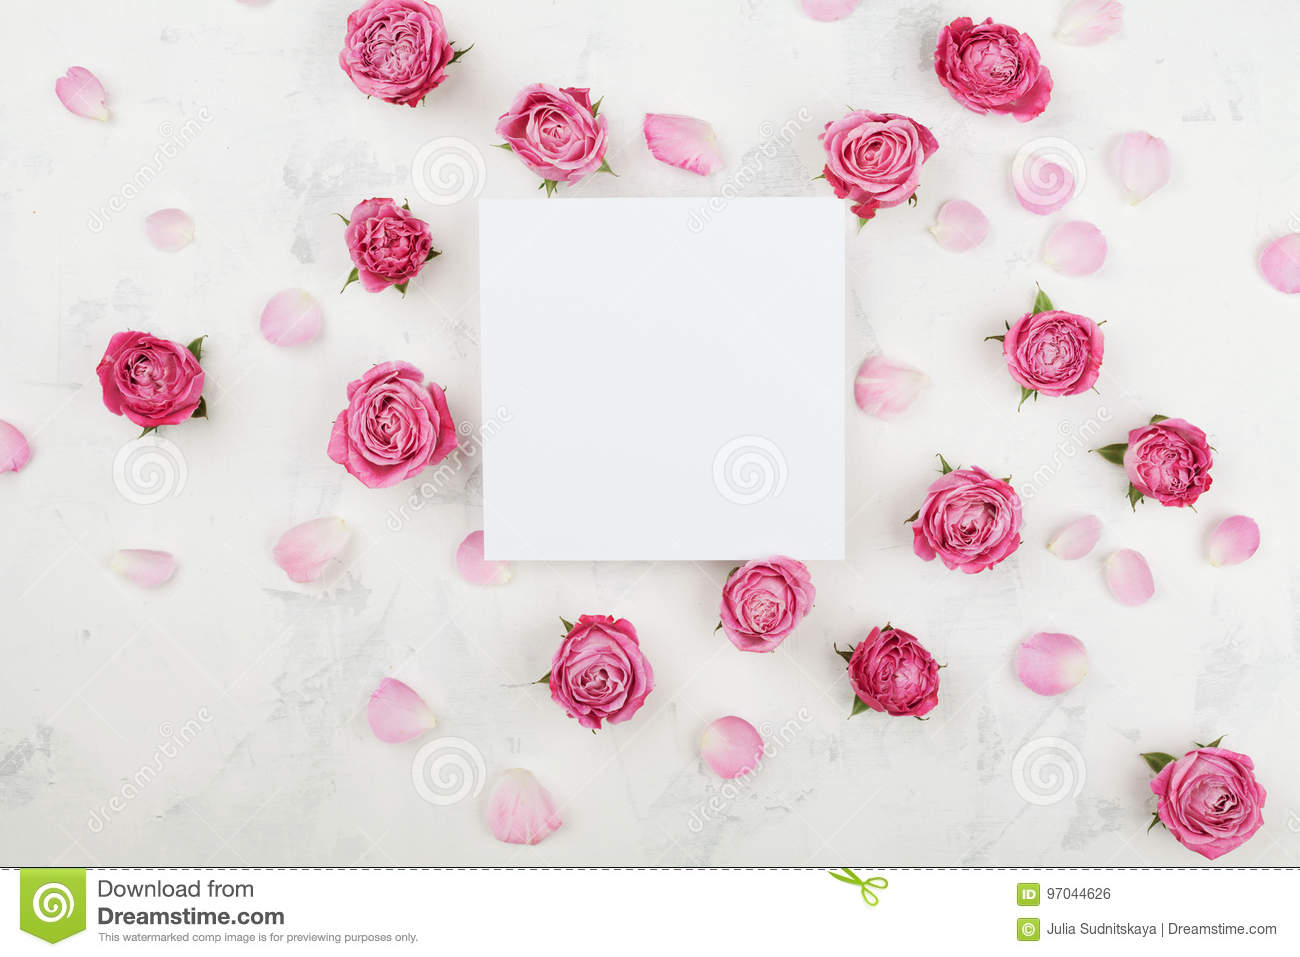 Wedding mockup with white paper list pink rose flowers and petals wedding mockup with white paper list pink rose flowers and petals on light table top mightylinksfo